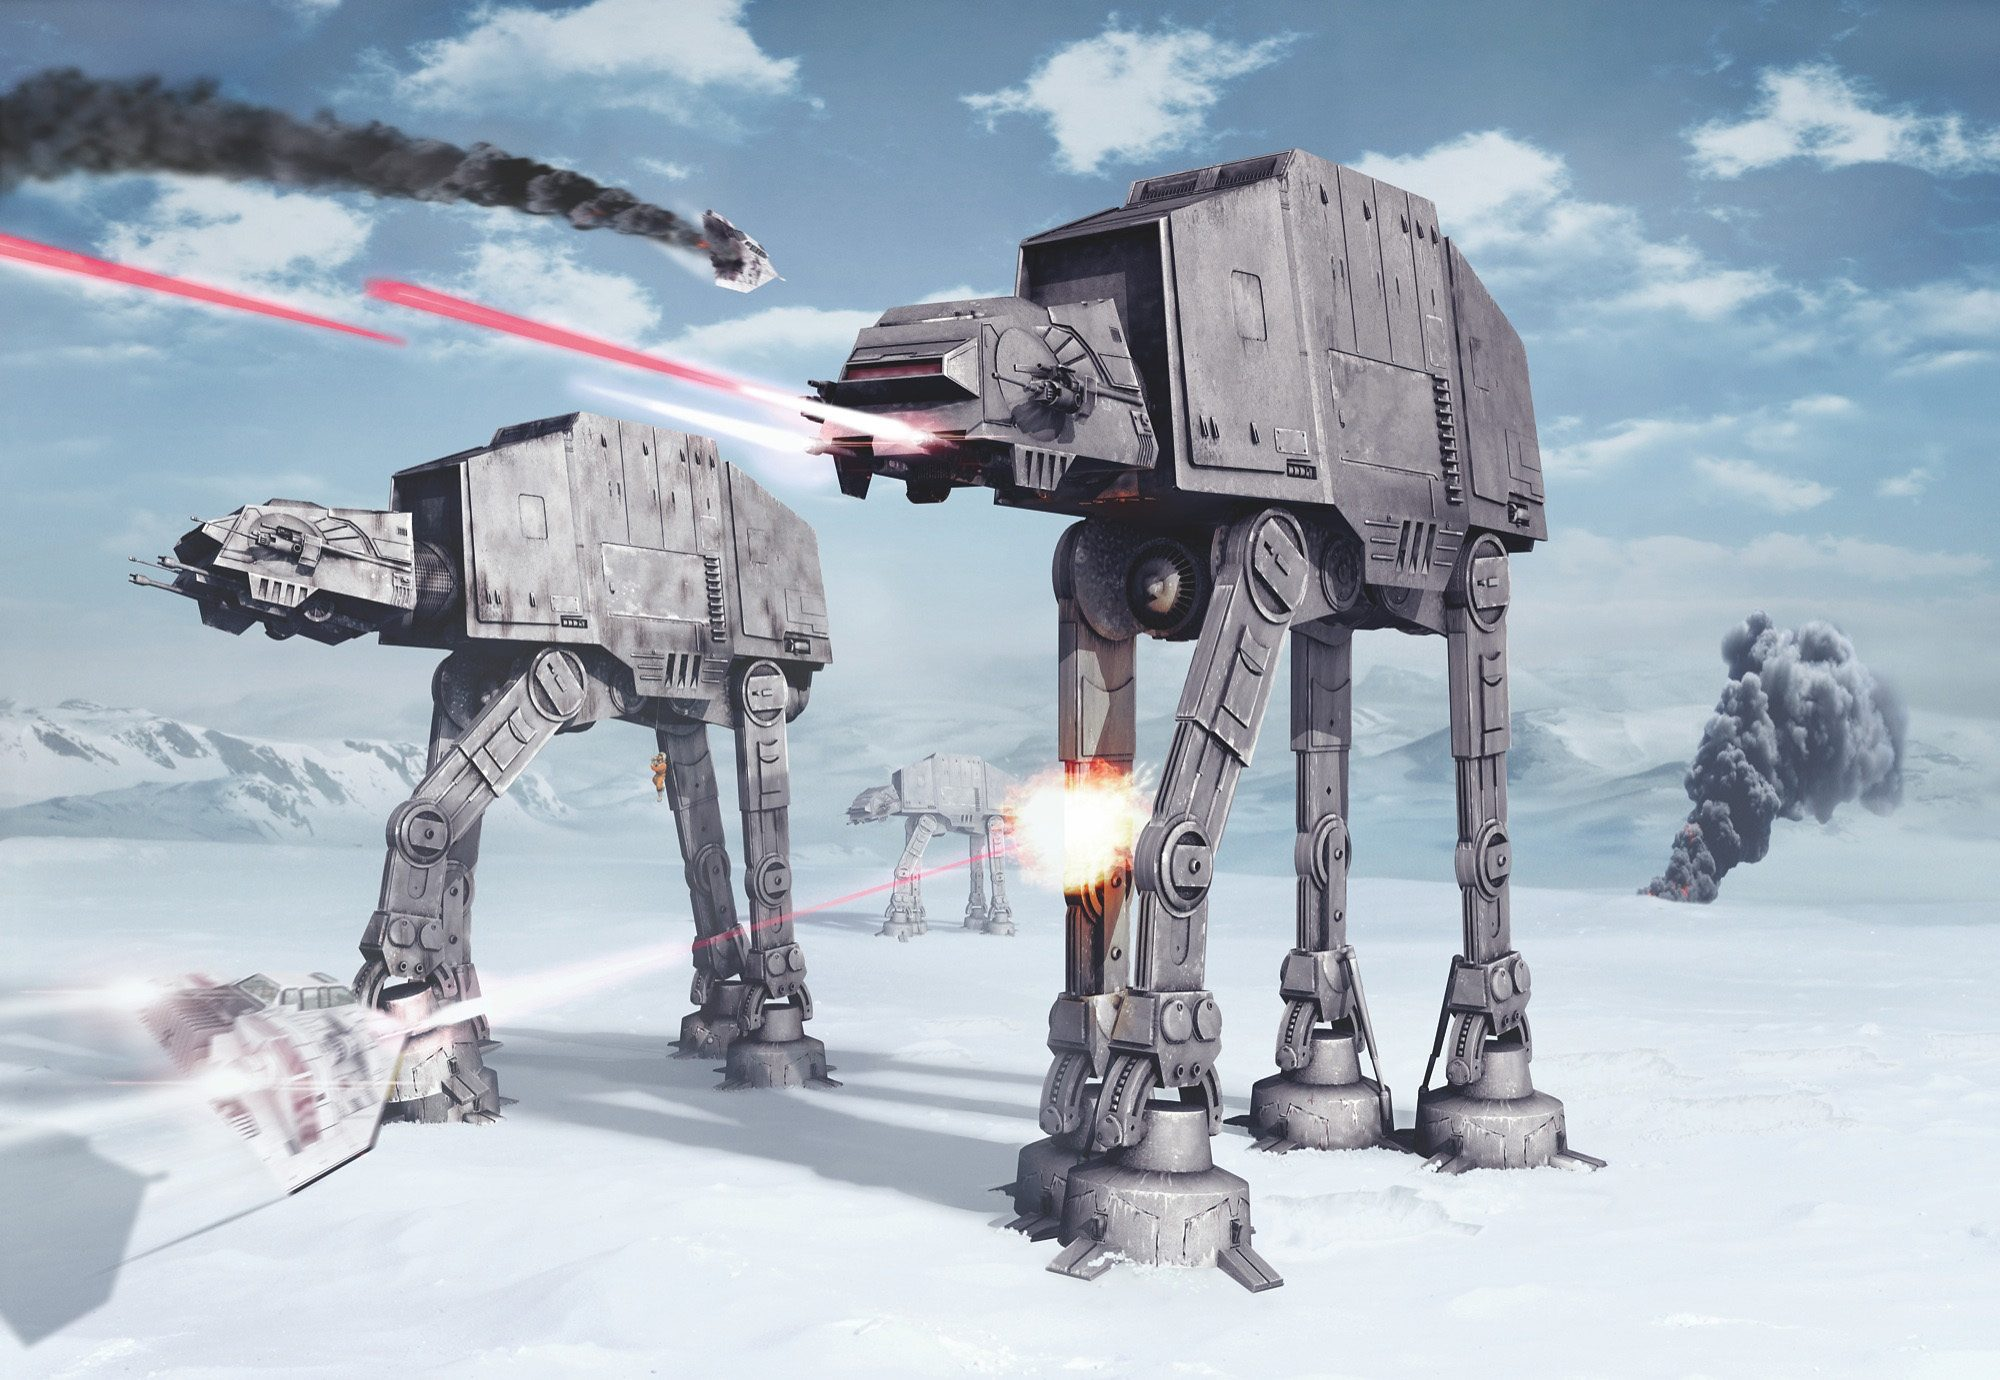 Papiertapete, Komar, »Star Wars Battle of Hoth«, 368/254 cm